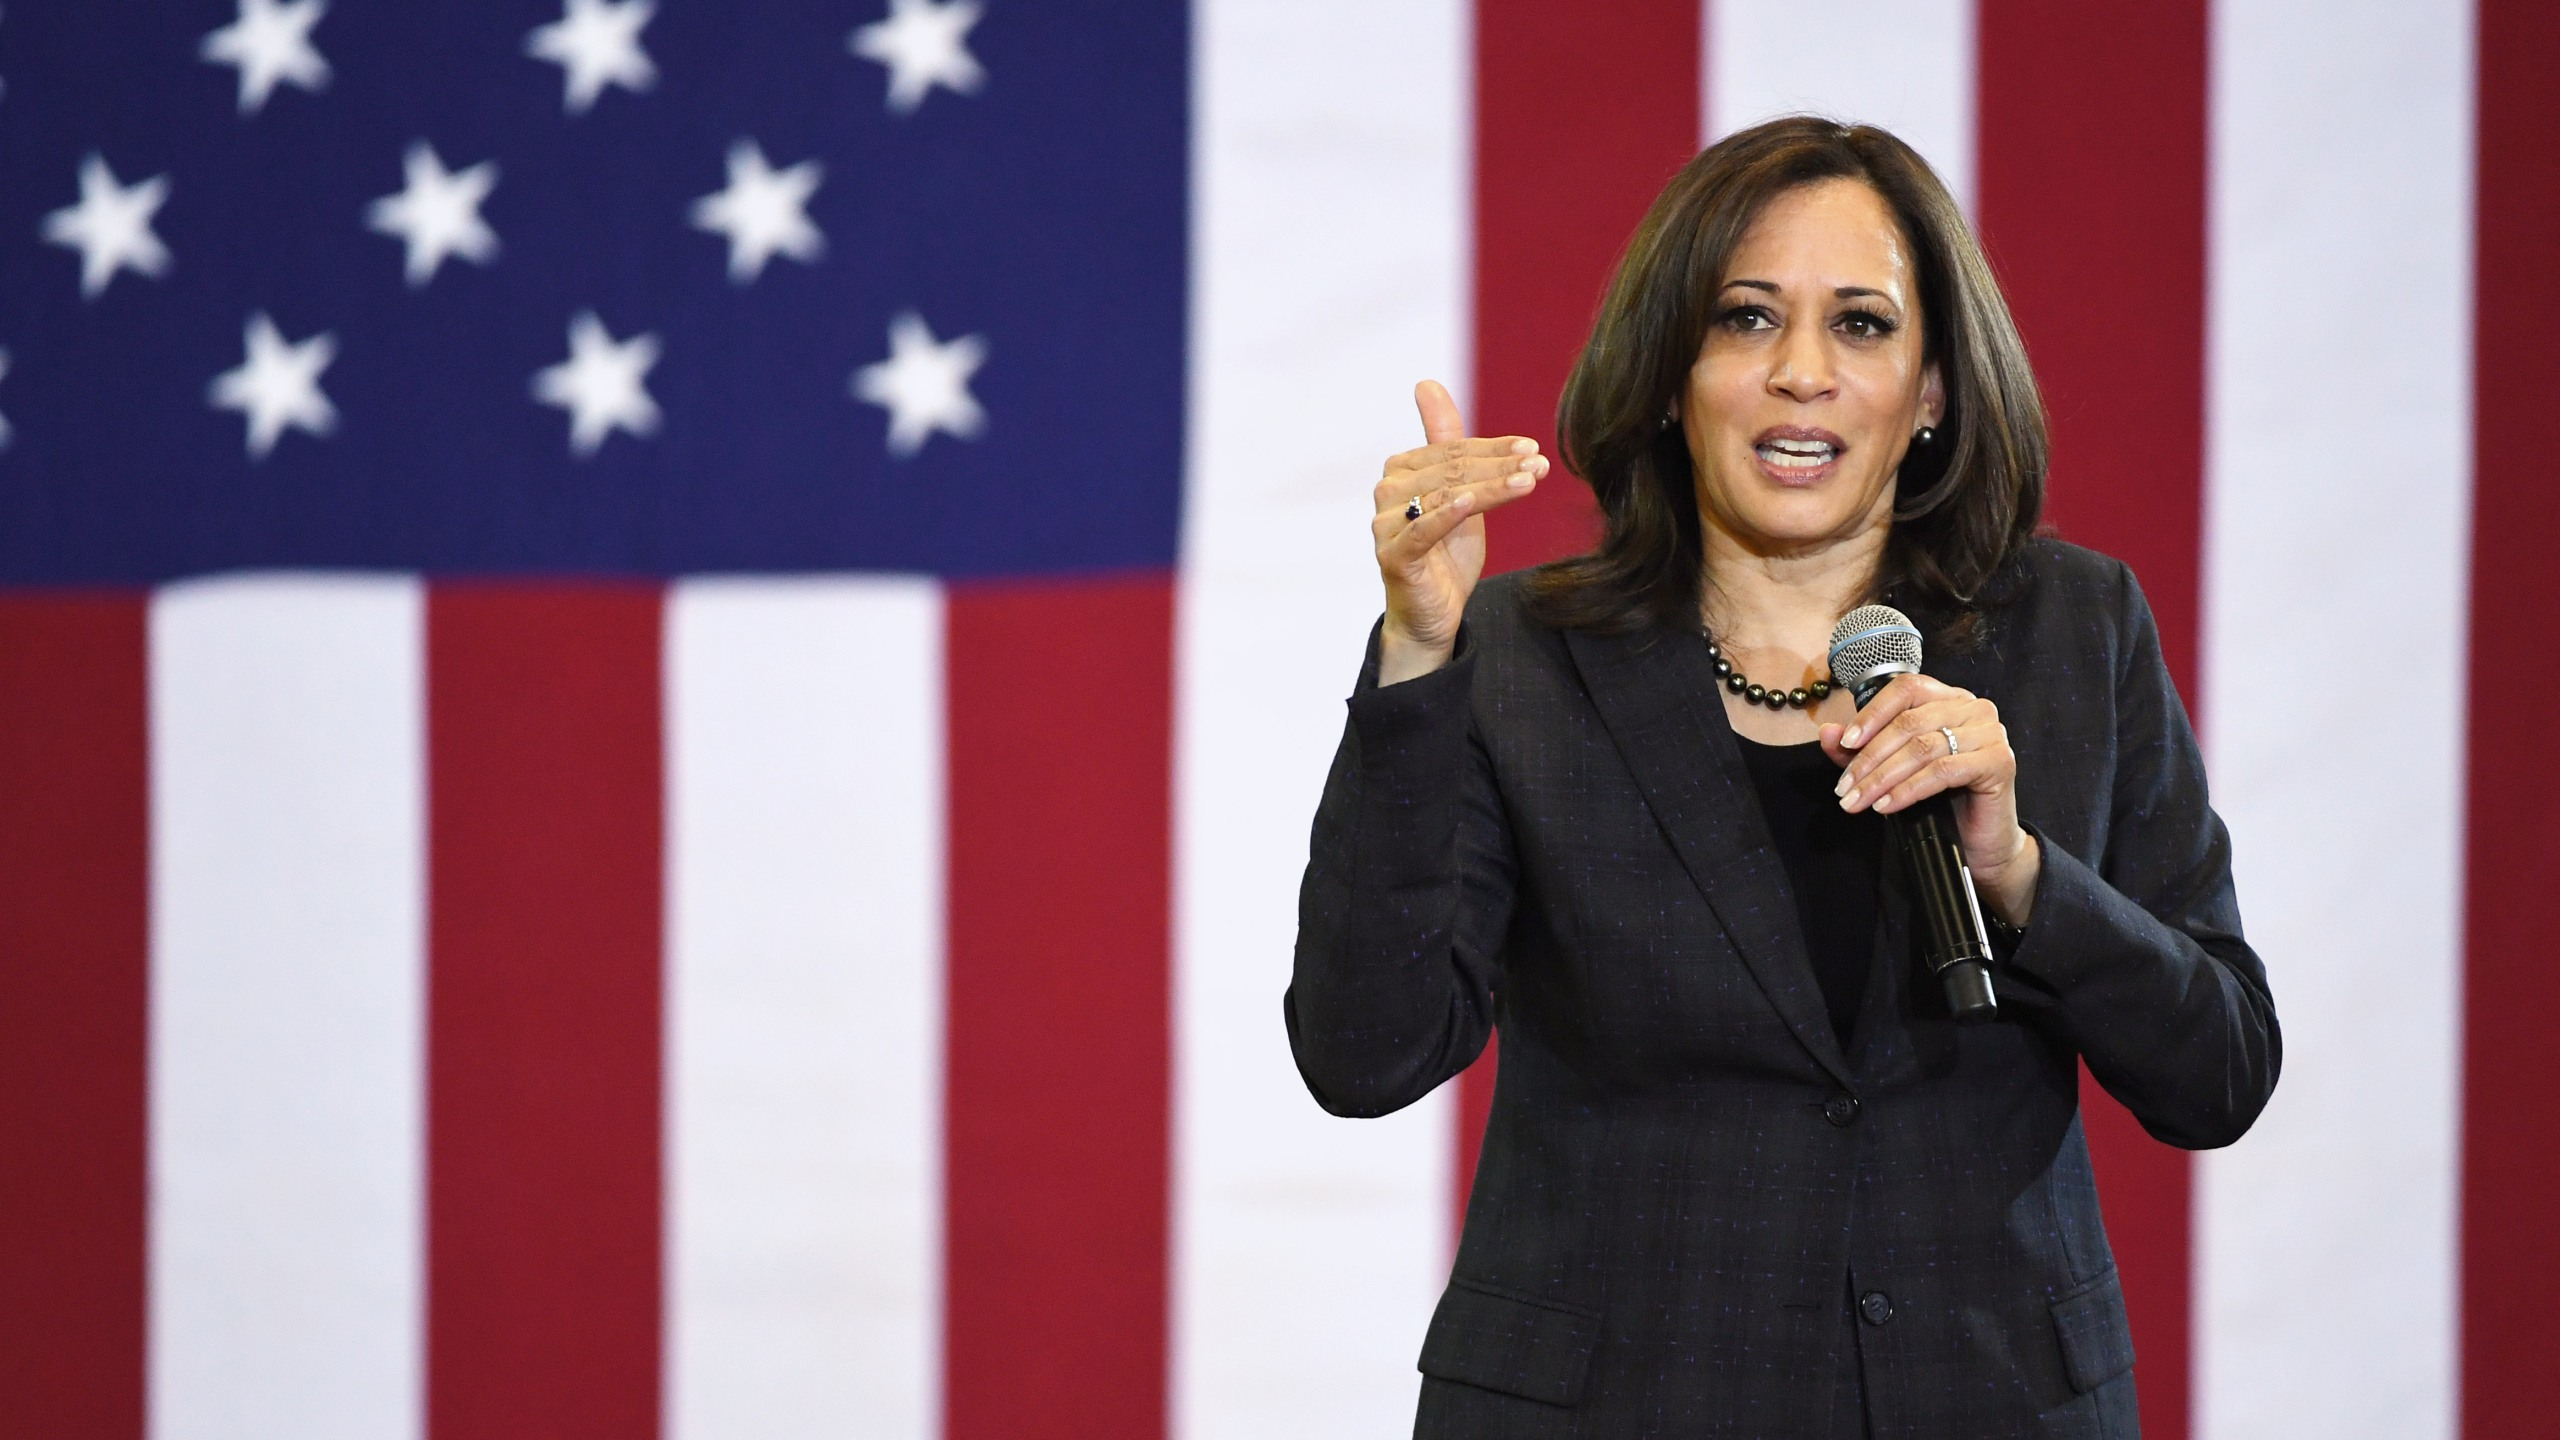 Sen. Kamala Harris speaks during a town hall meeting at Canyon Springs High School in North Las Vegas on March 1, 2019. (Credit: Ethan Miller / Getty Images)